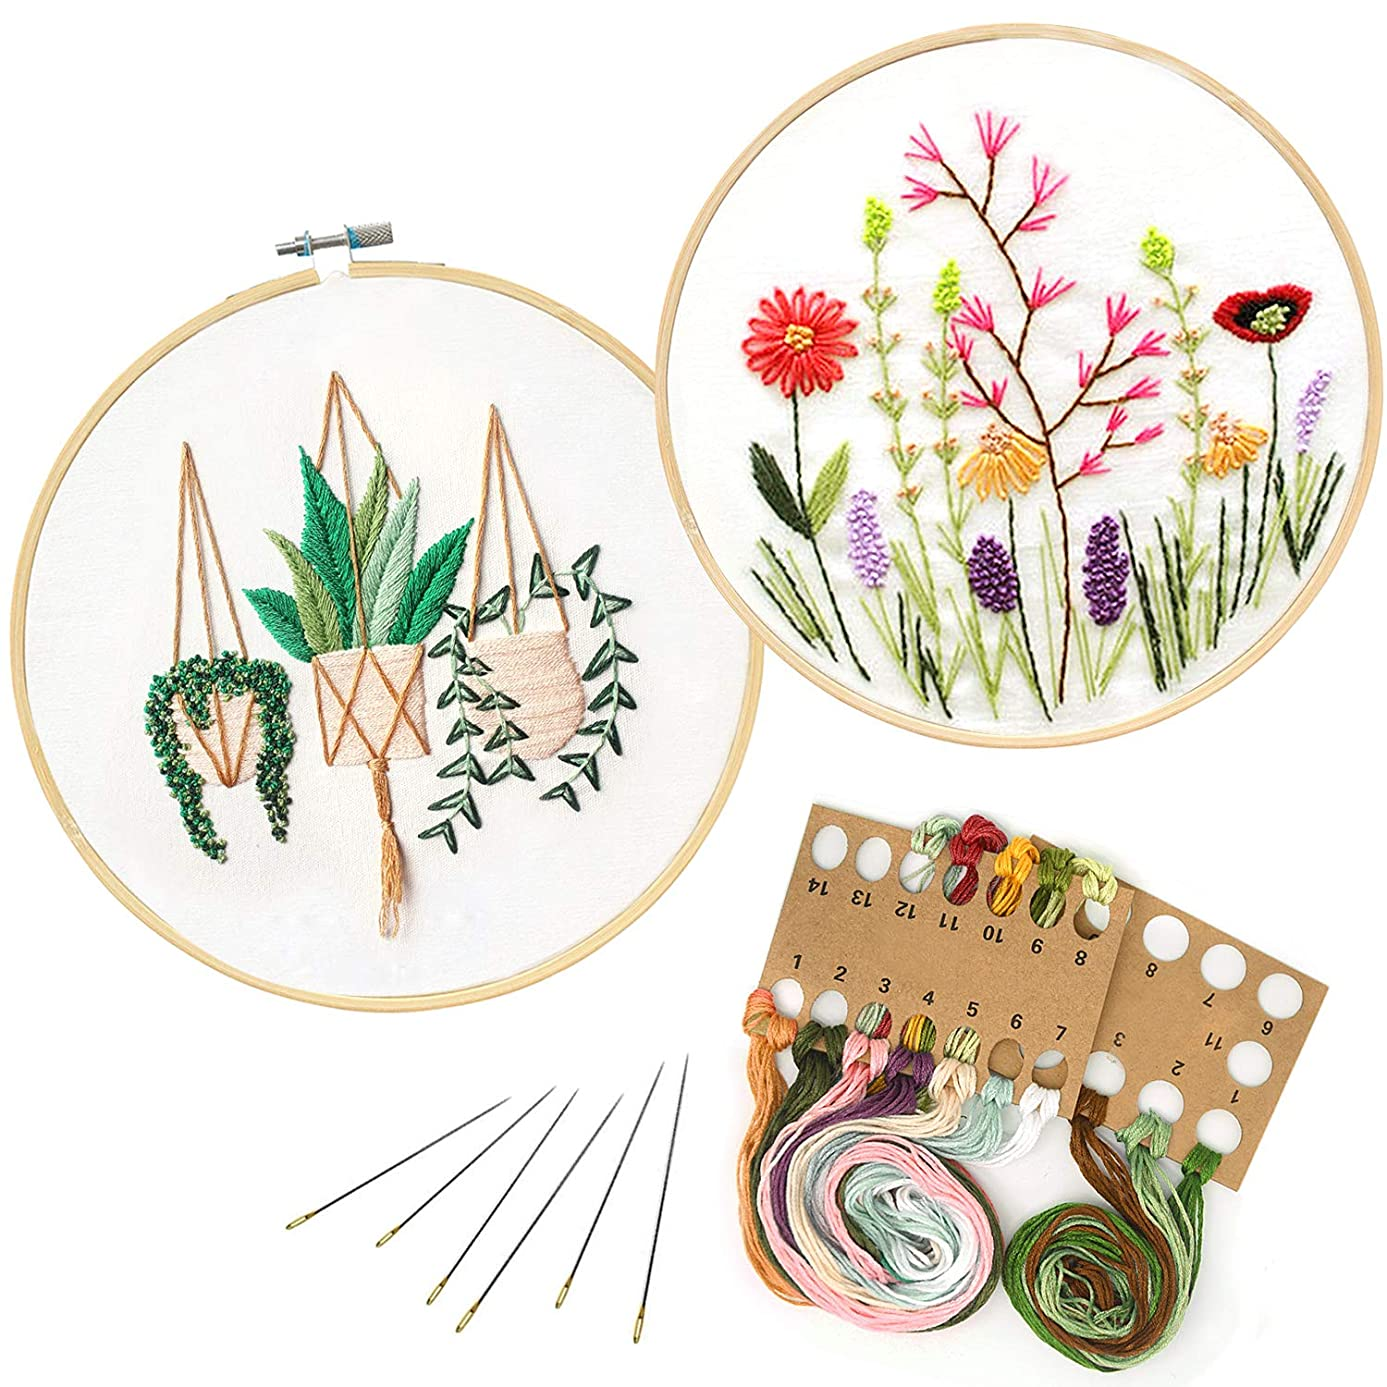 2 Pack Embroidery Starter Kit with Pattern, Full Range of Embroidery Kit for Beginner Stamped DIY Embroidery Kit Includes Embroidery Cloth, Embroidery Hoop, Threads, Tools Kit (Bracketplant & Flowers)